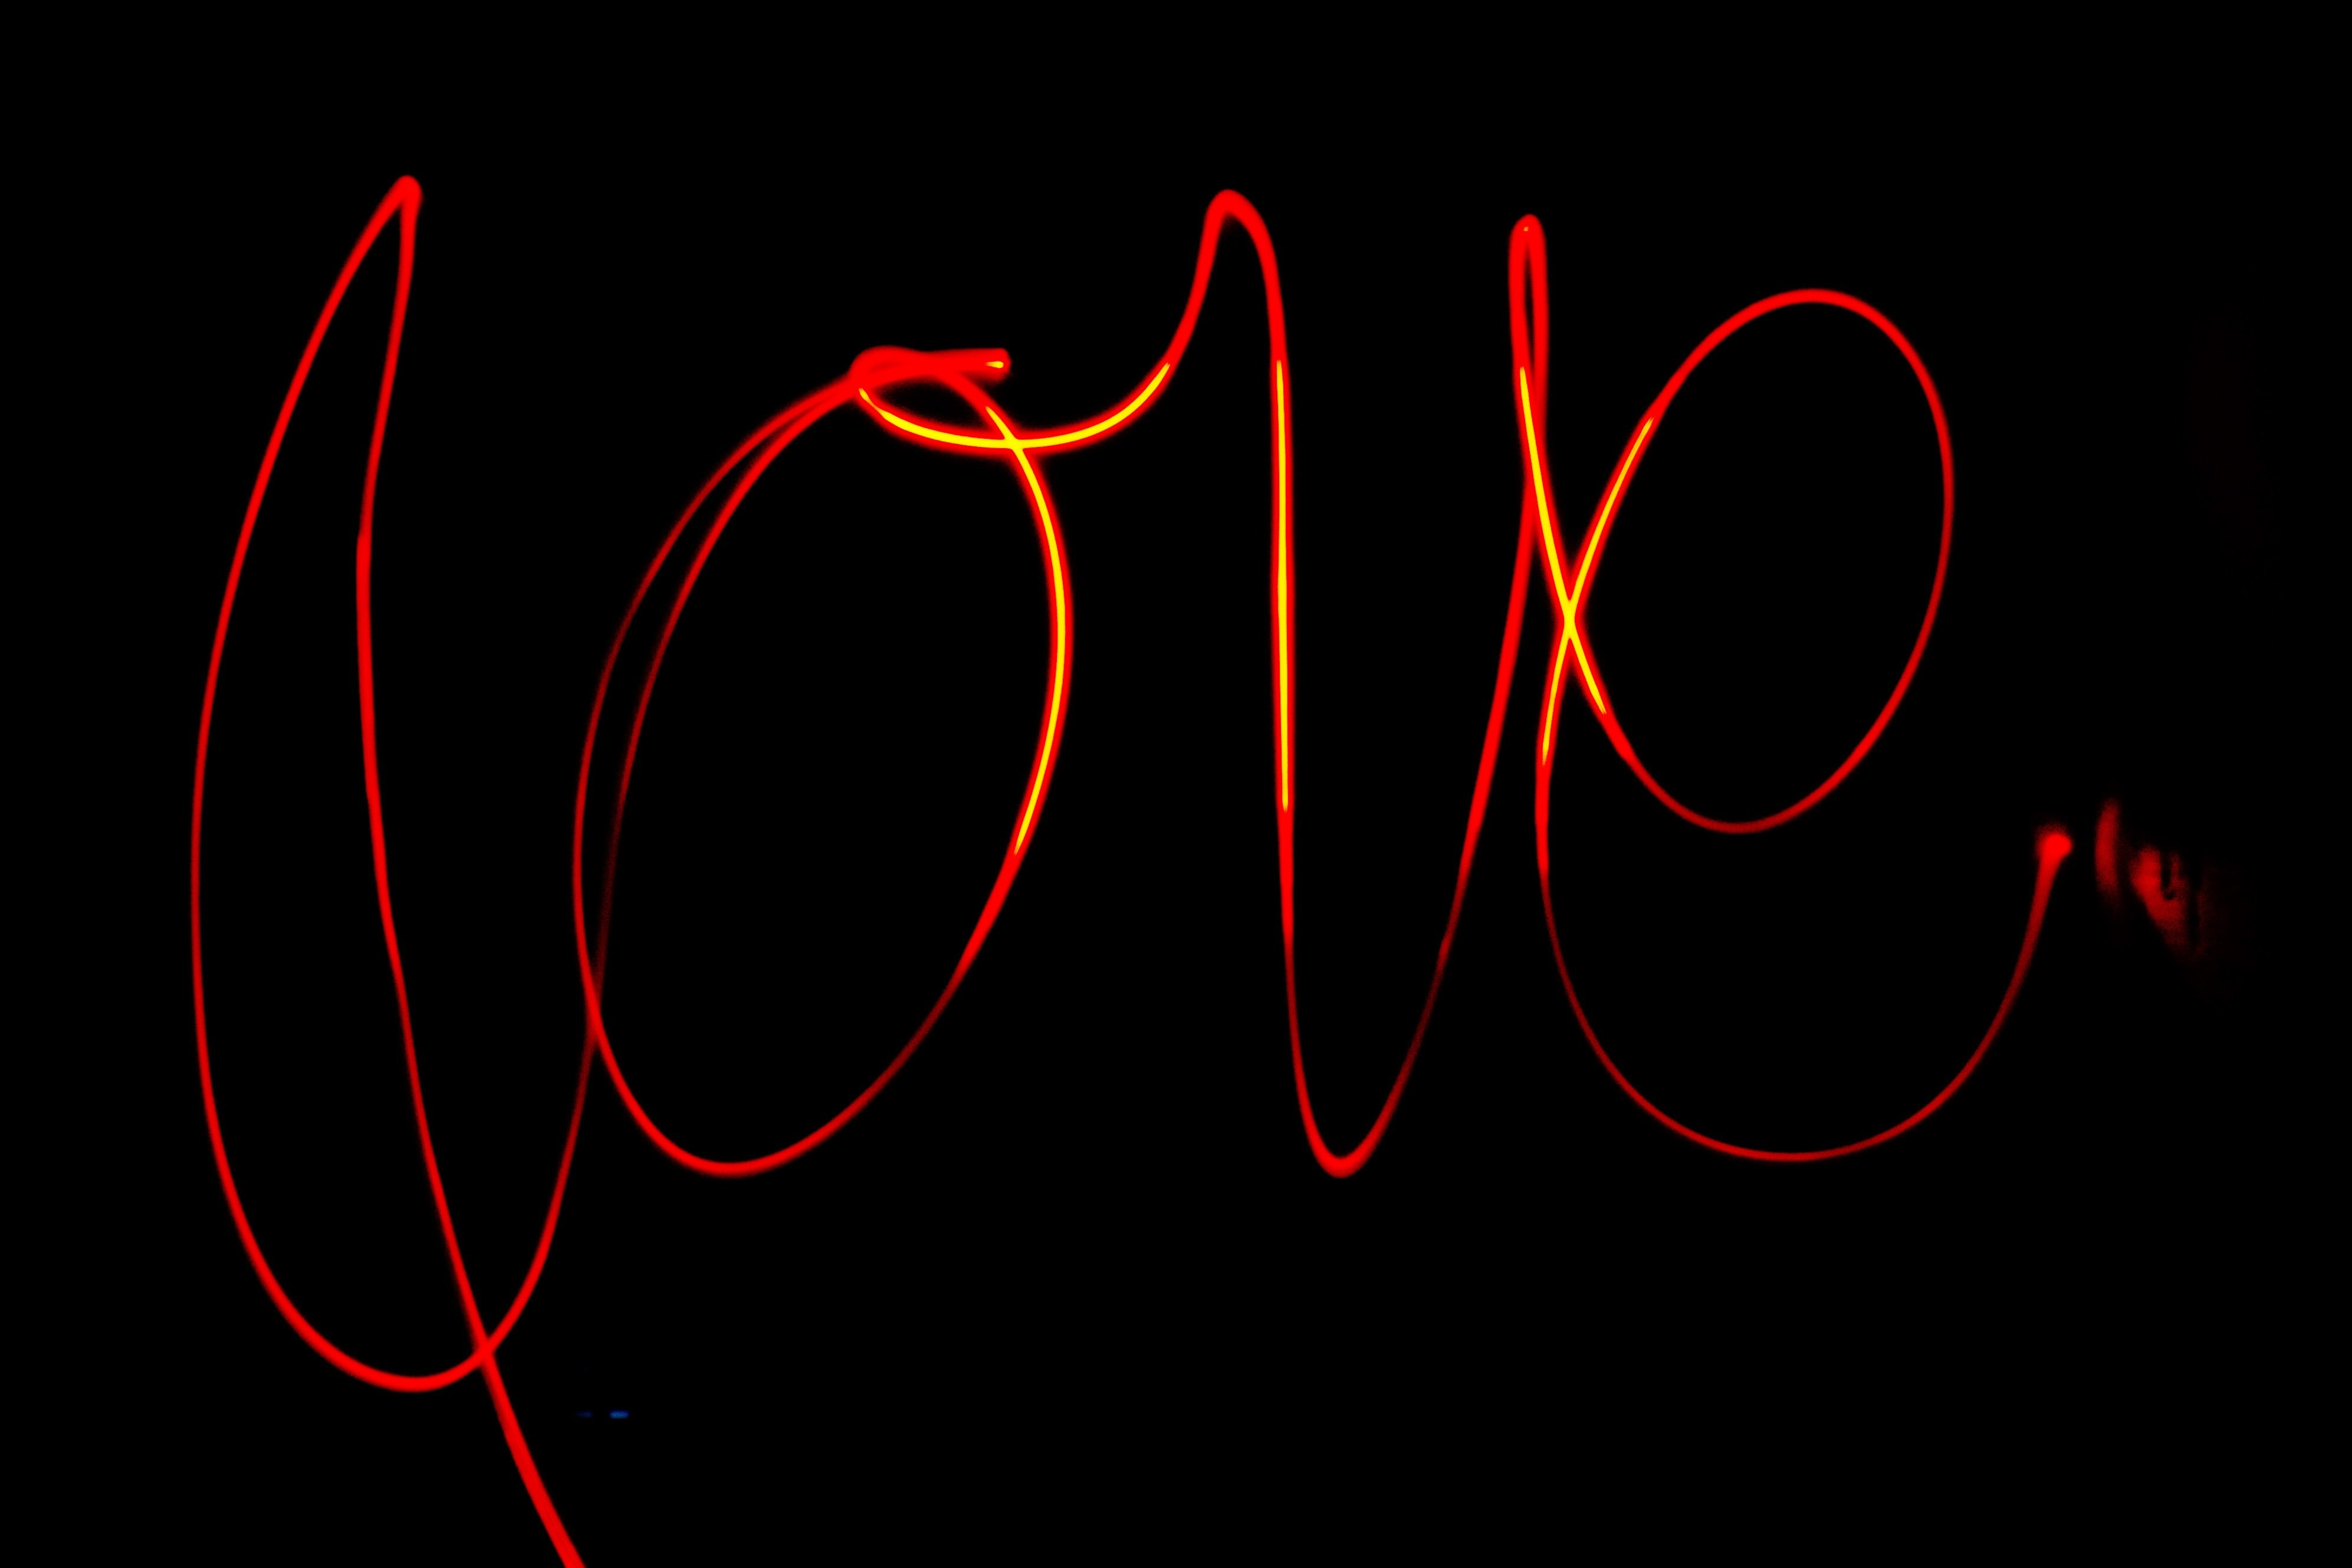 black background with love text overlay